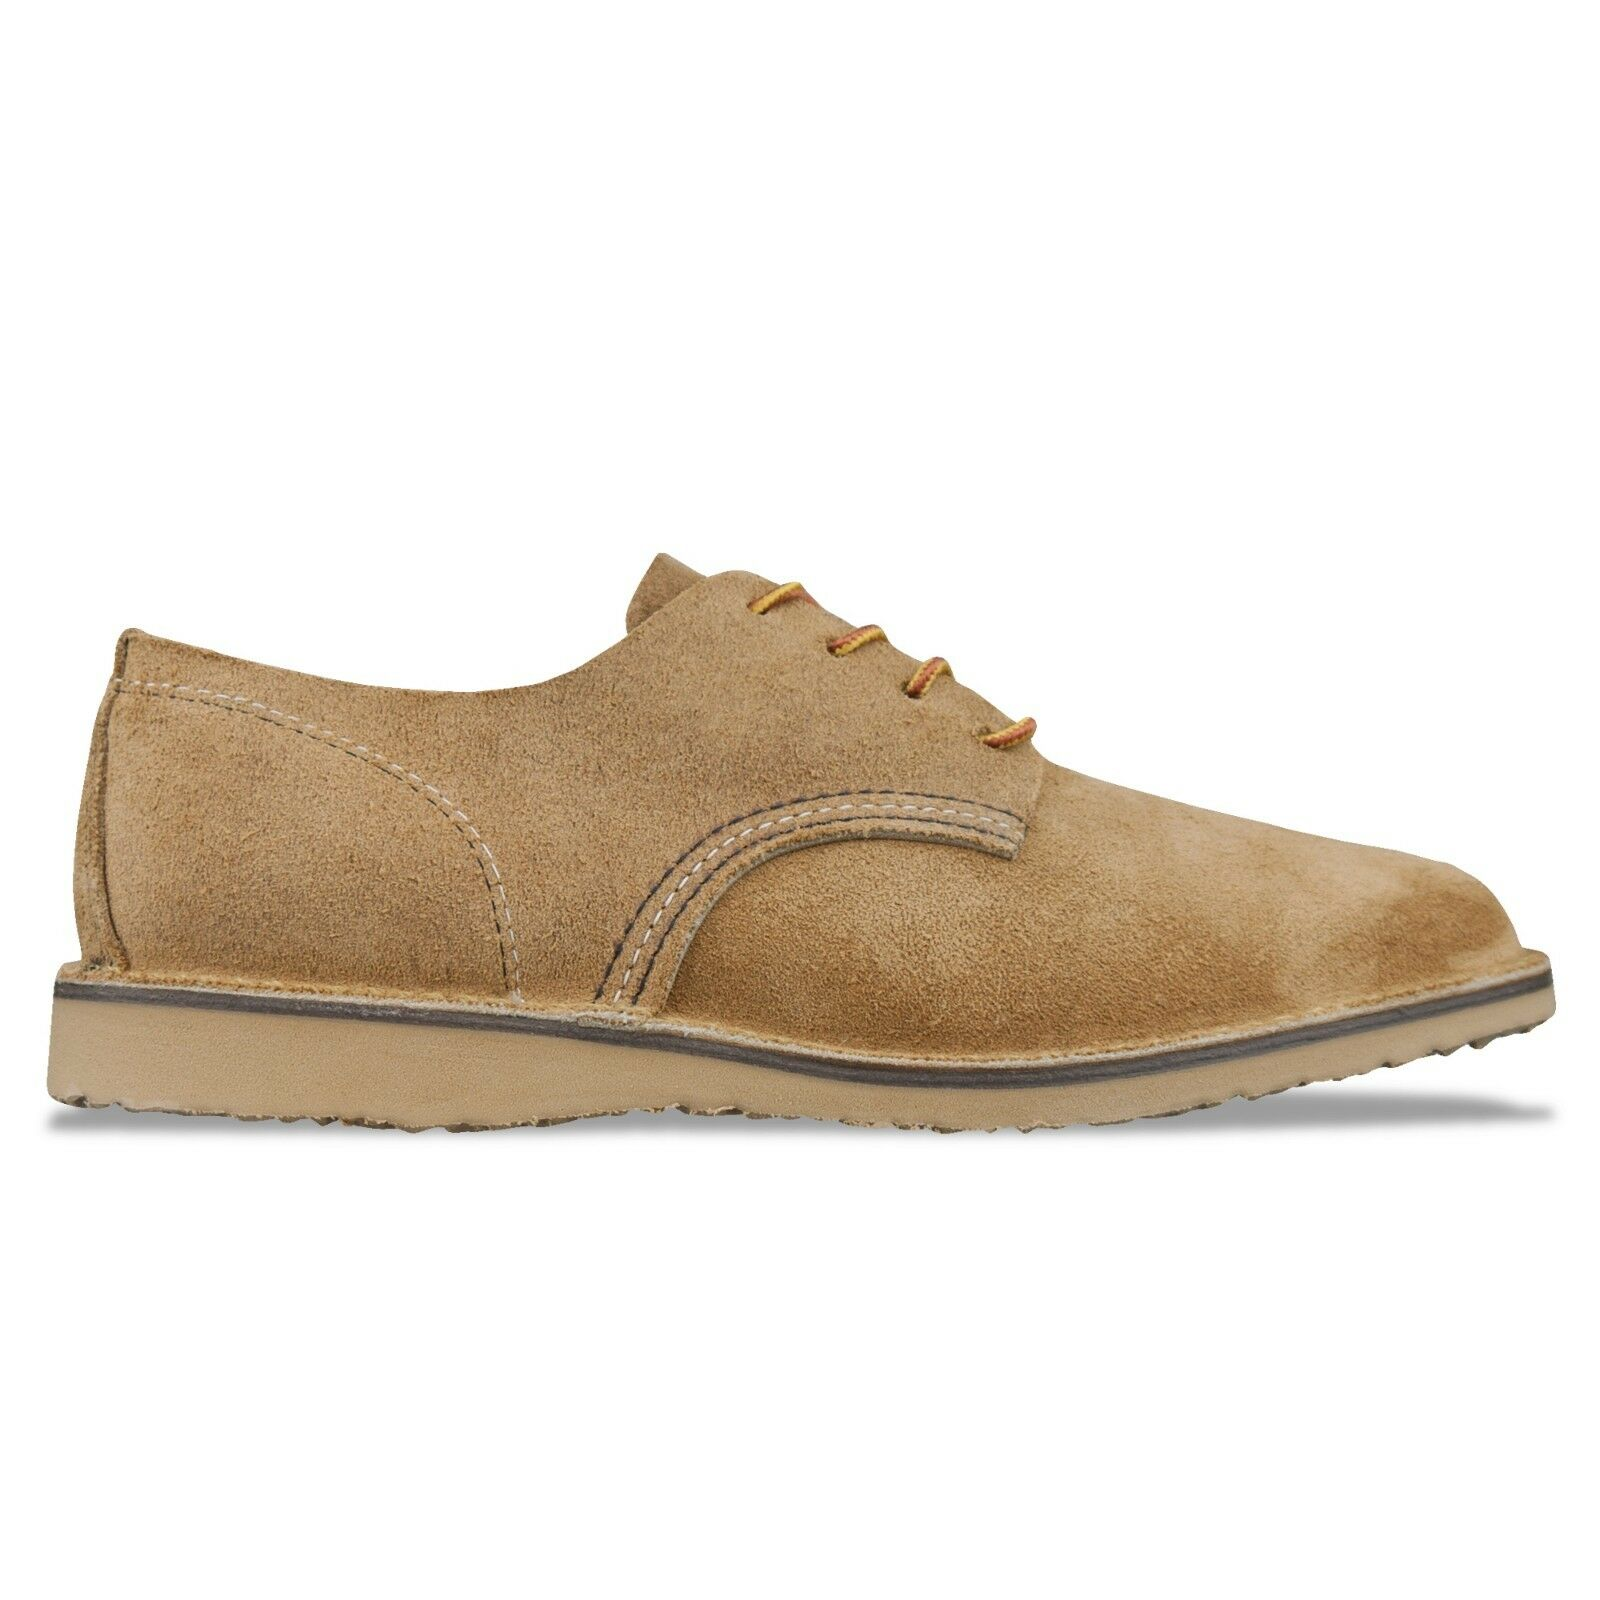 Rouge    wing de chaussures Rouge  wing 3302 weekender oxford chaussure hawthorne muleskin bnib | Outlet Store  76718e